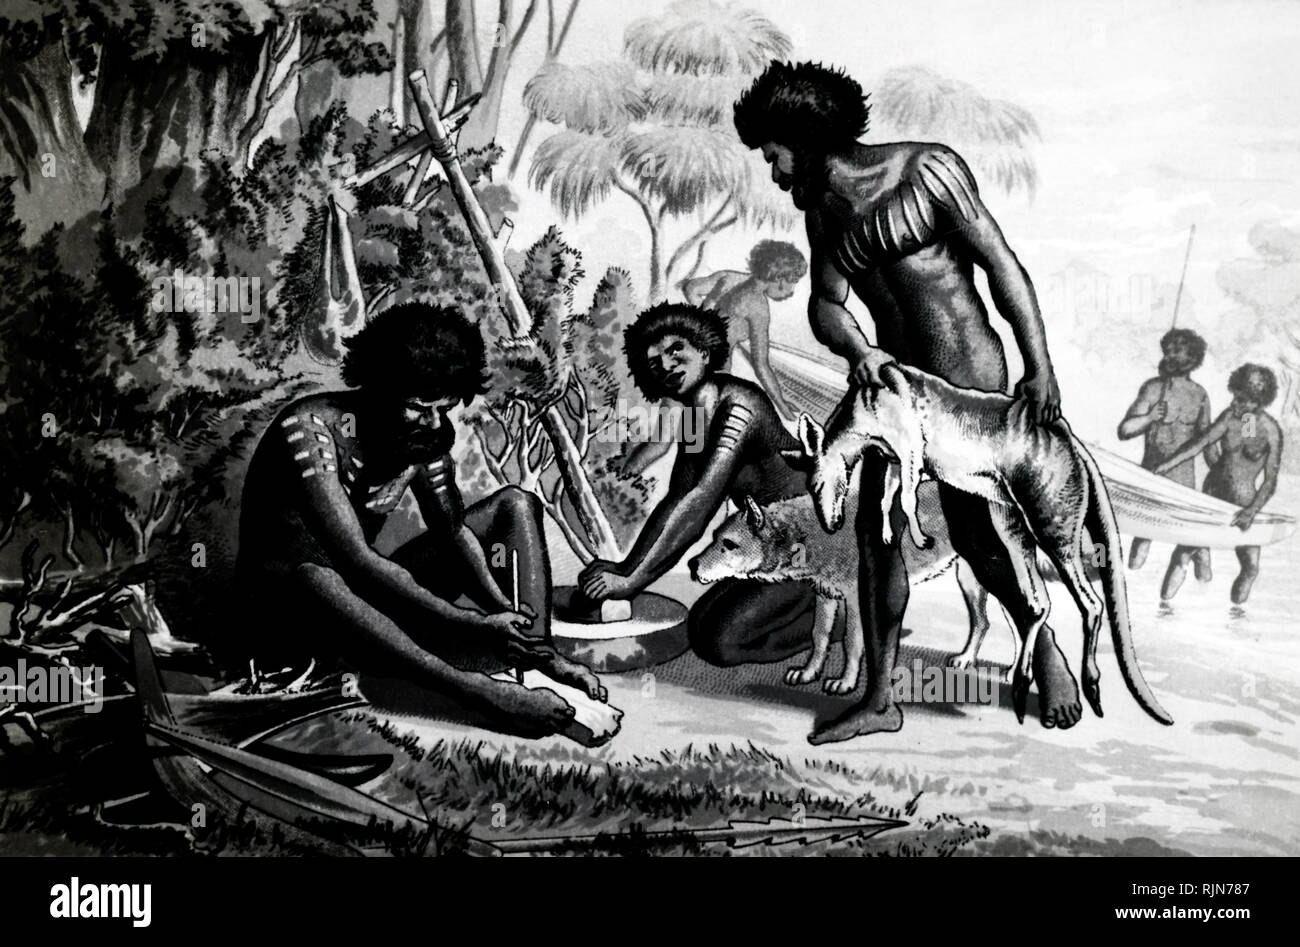 Illustration showing Australian aborigines preparing a meal beside a river. The man on the left is making fire by rubbing softwood core with hardwood stick (blister method). With them is their hunting dog (Dingo?). - Stock Image